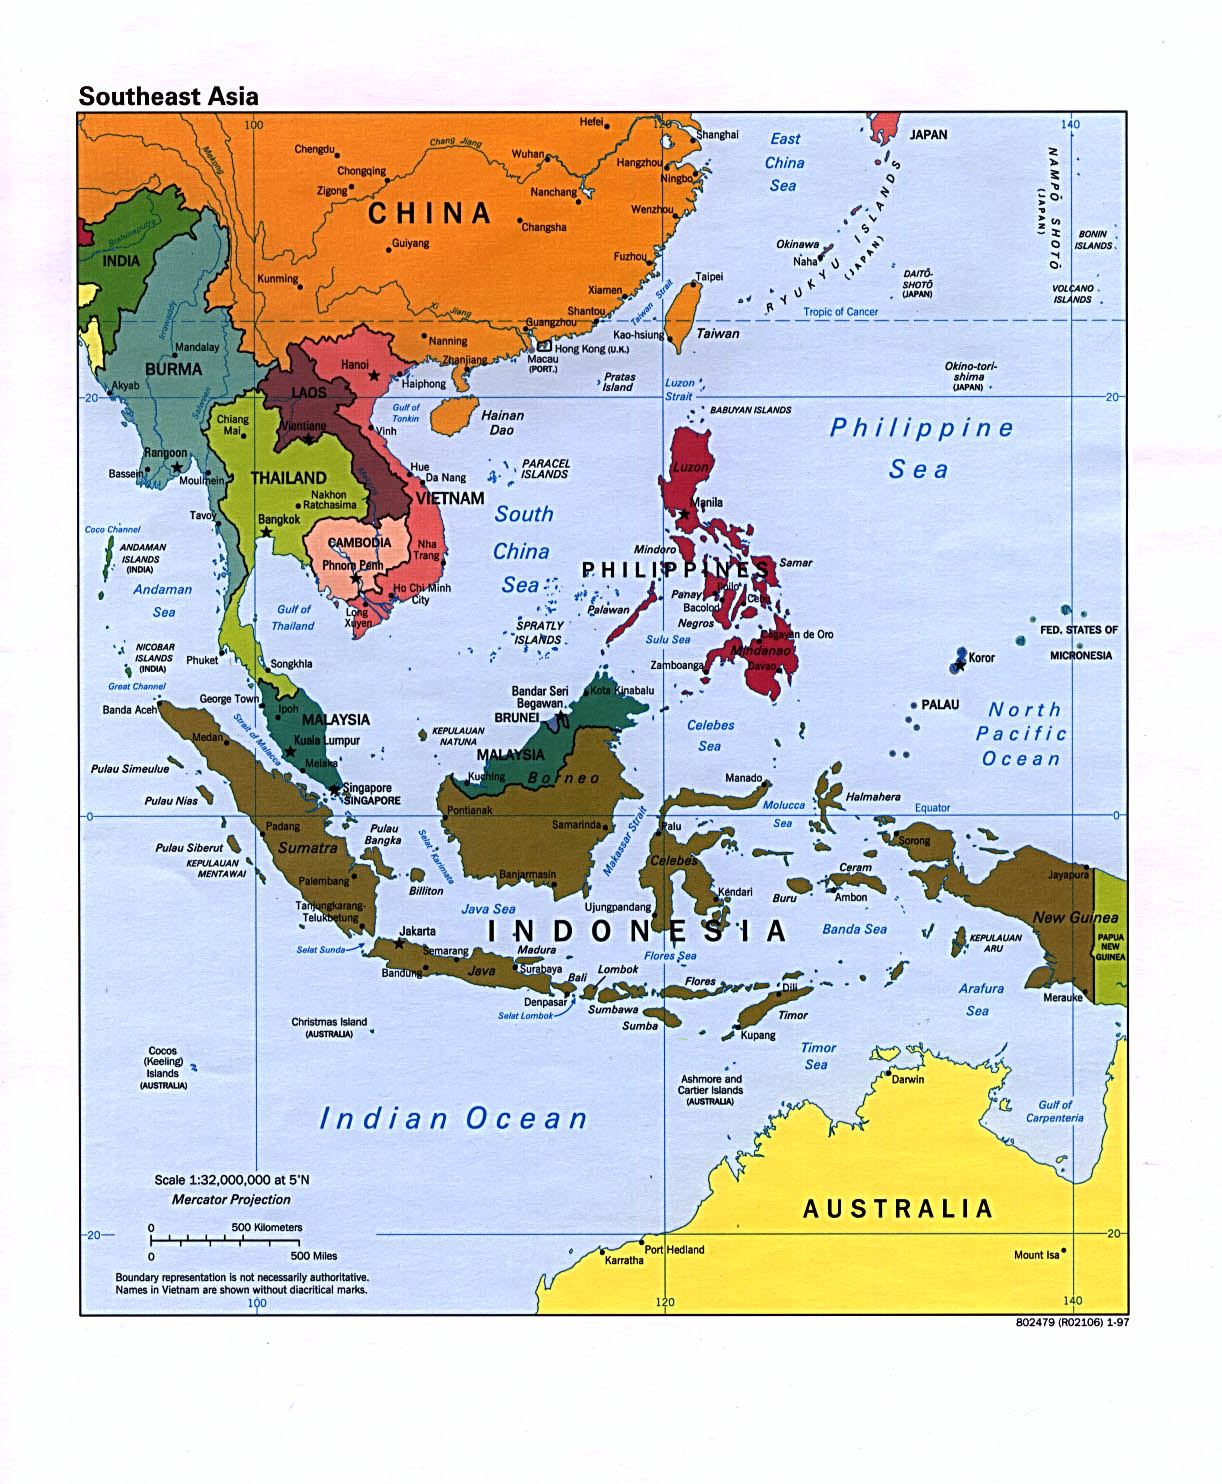 Map Of Asia Labeled With Countries.Asia Maps Perry Castaneda Map Collection Ut Library Online